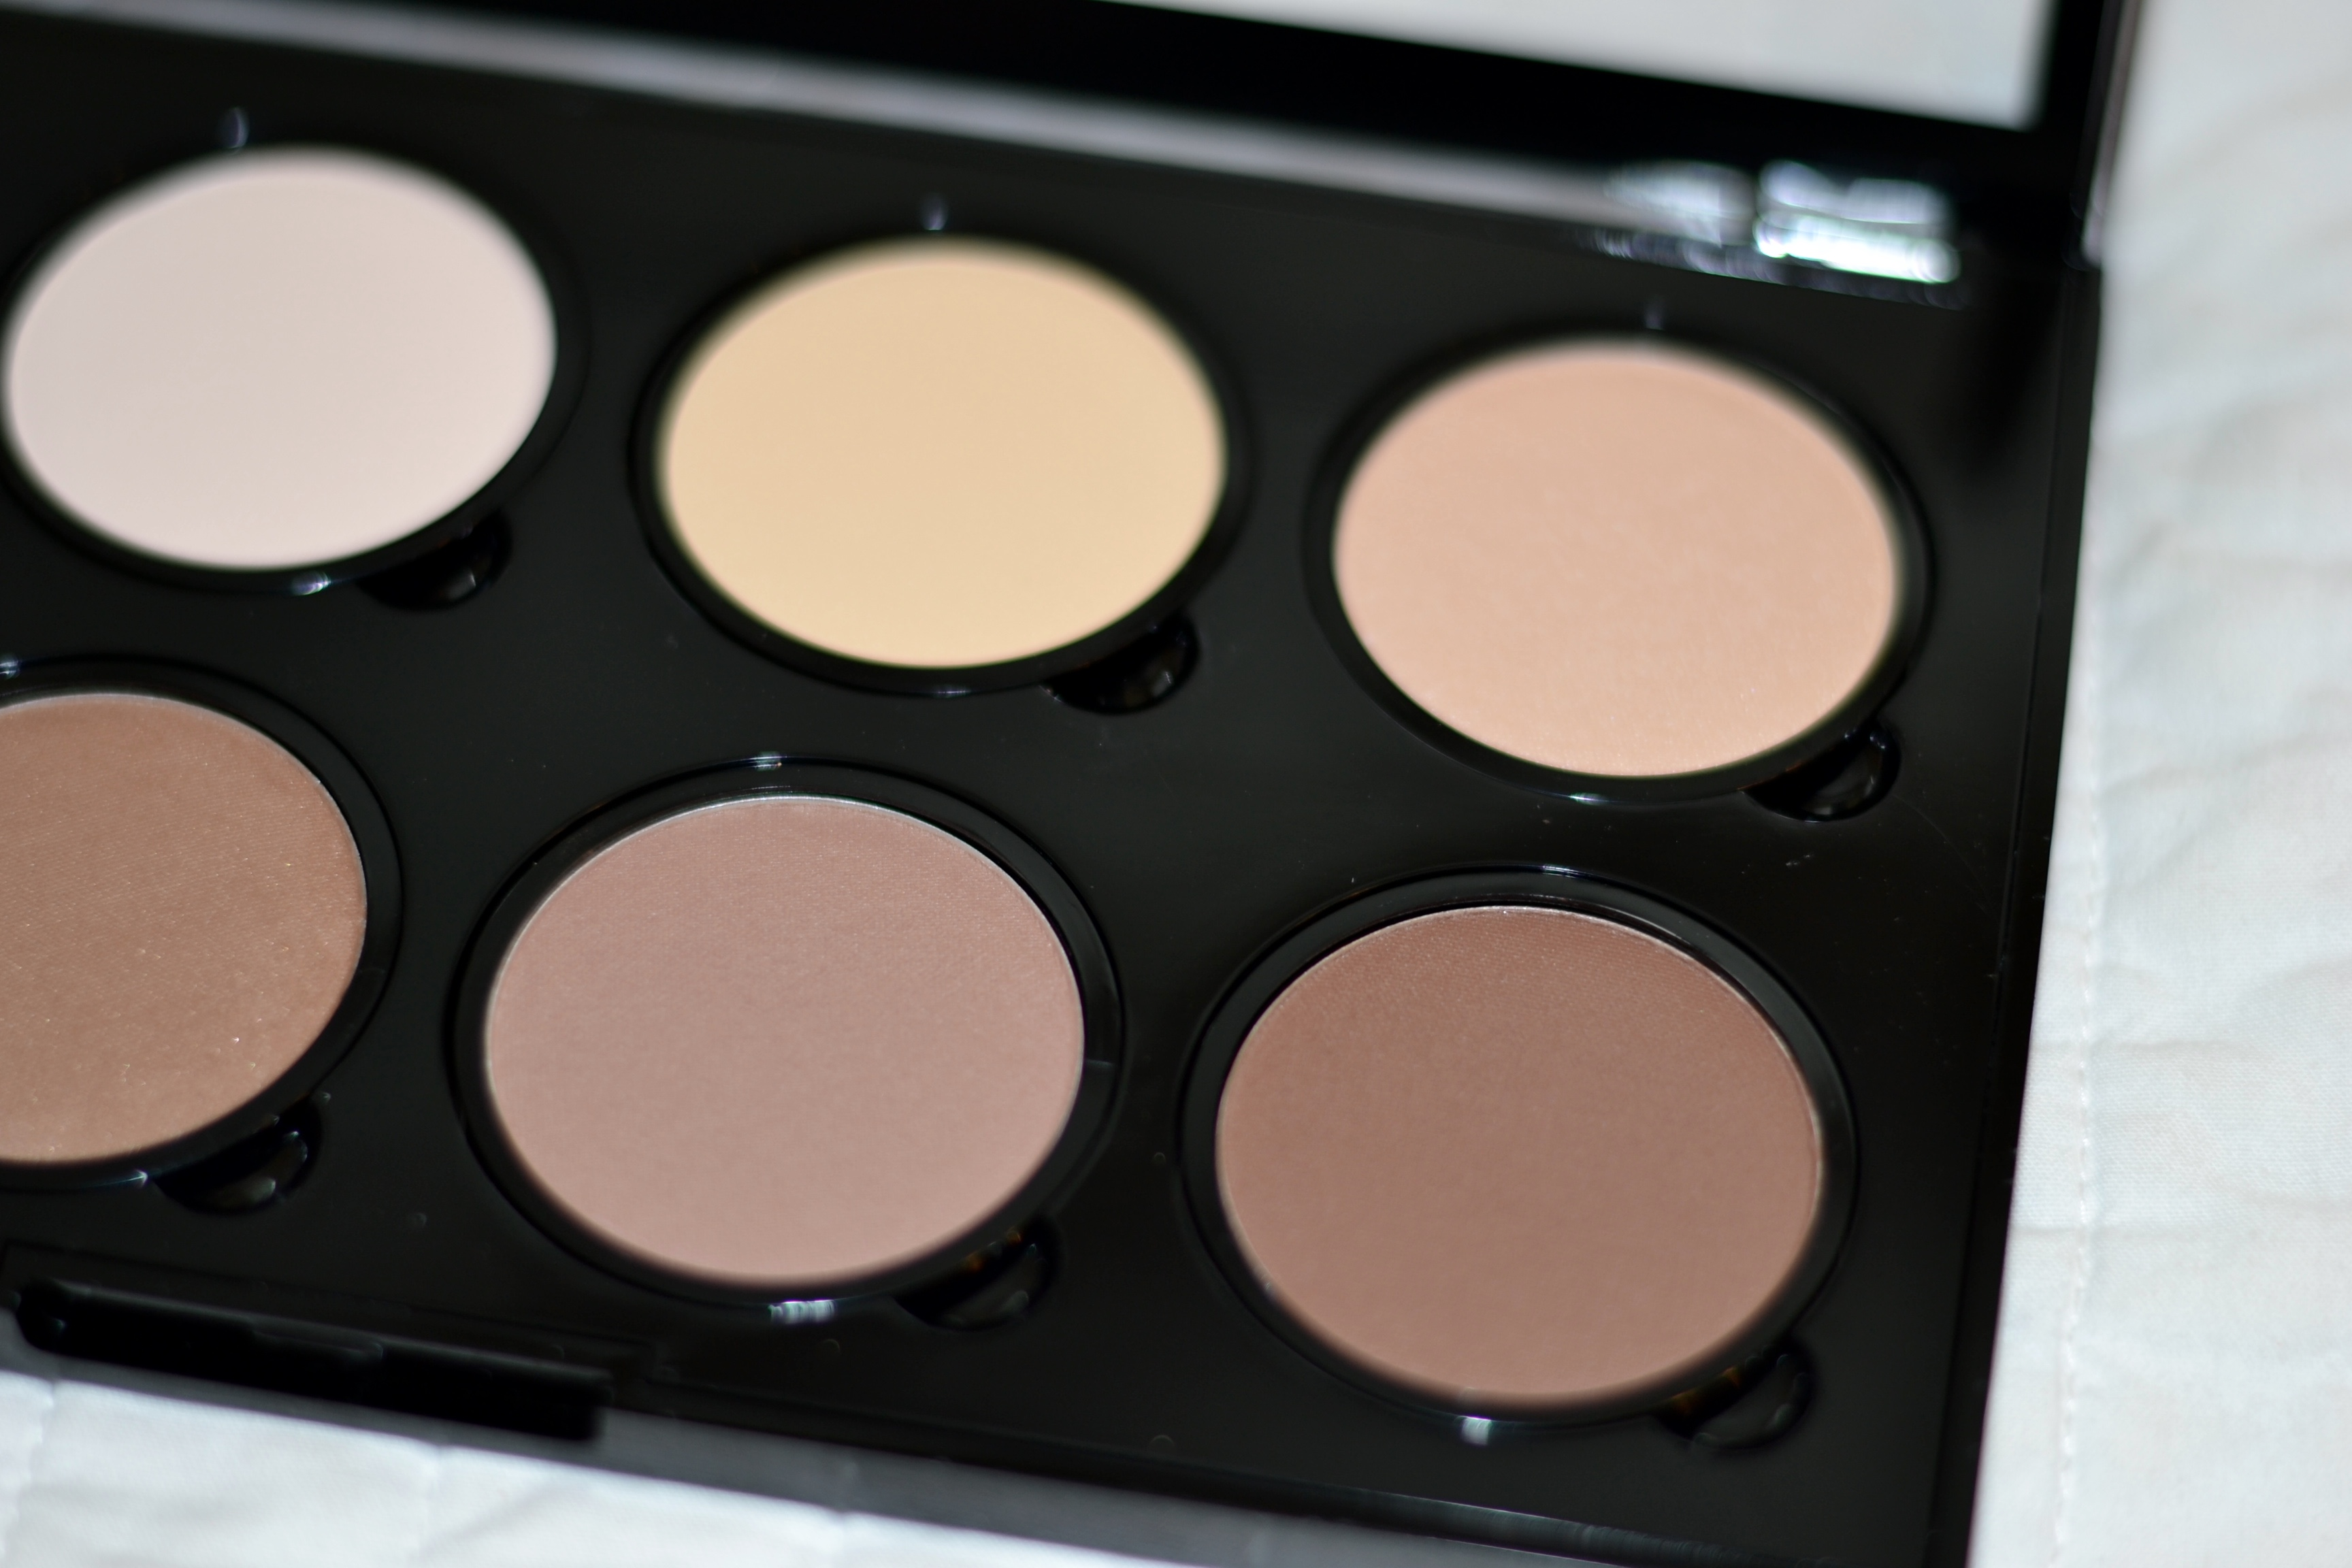 How To Use The Nyx Highlight & Contour Pro Palette